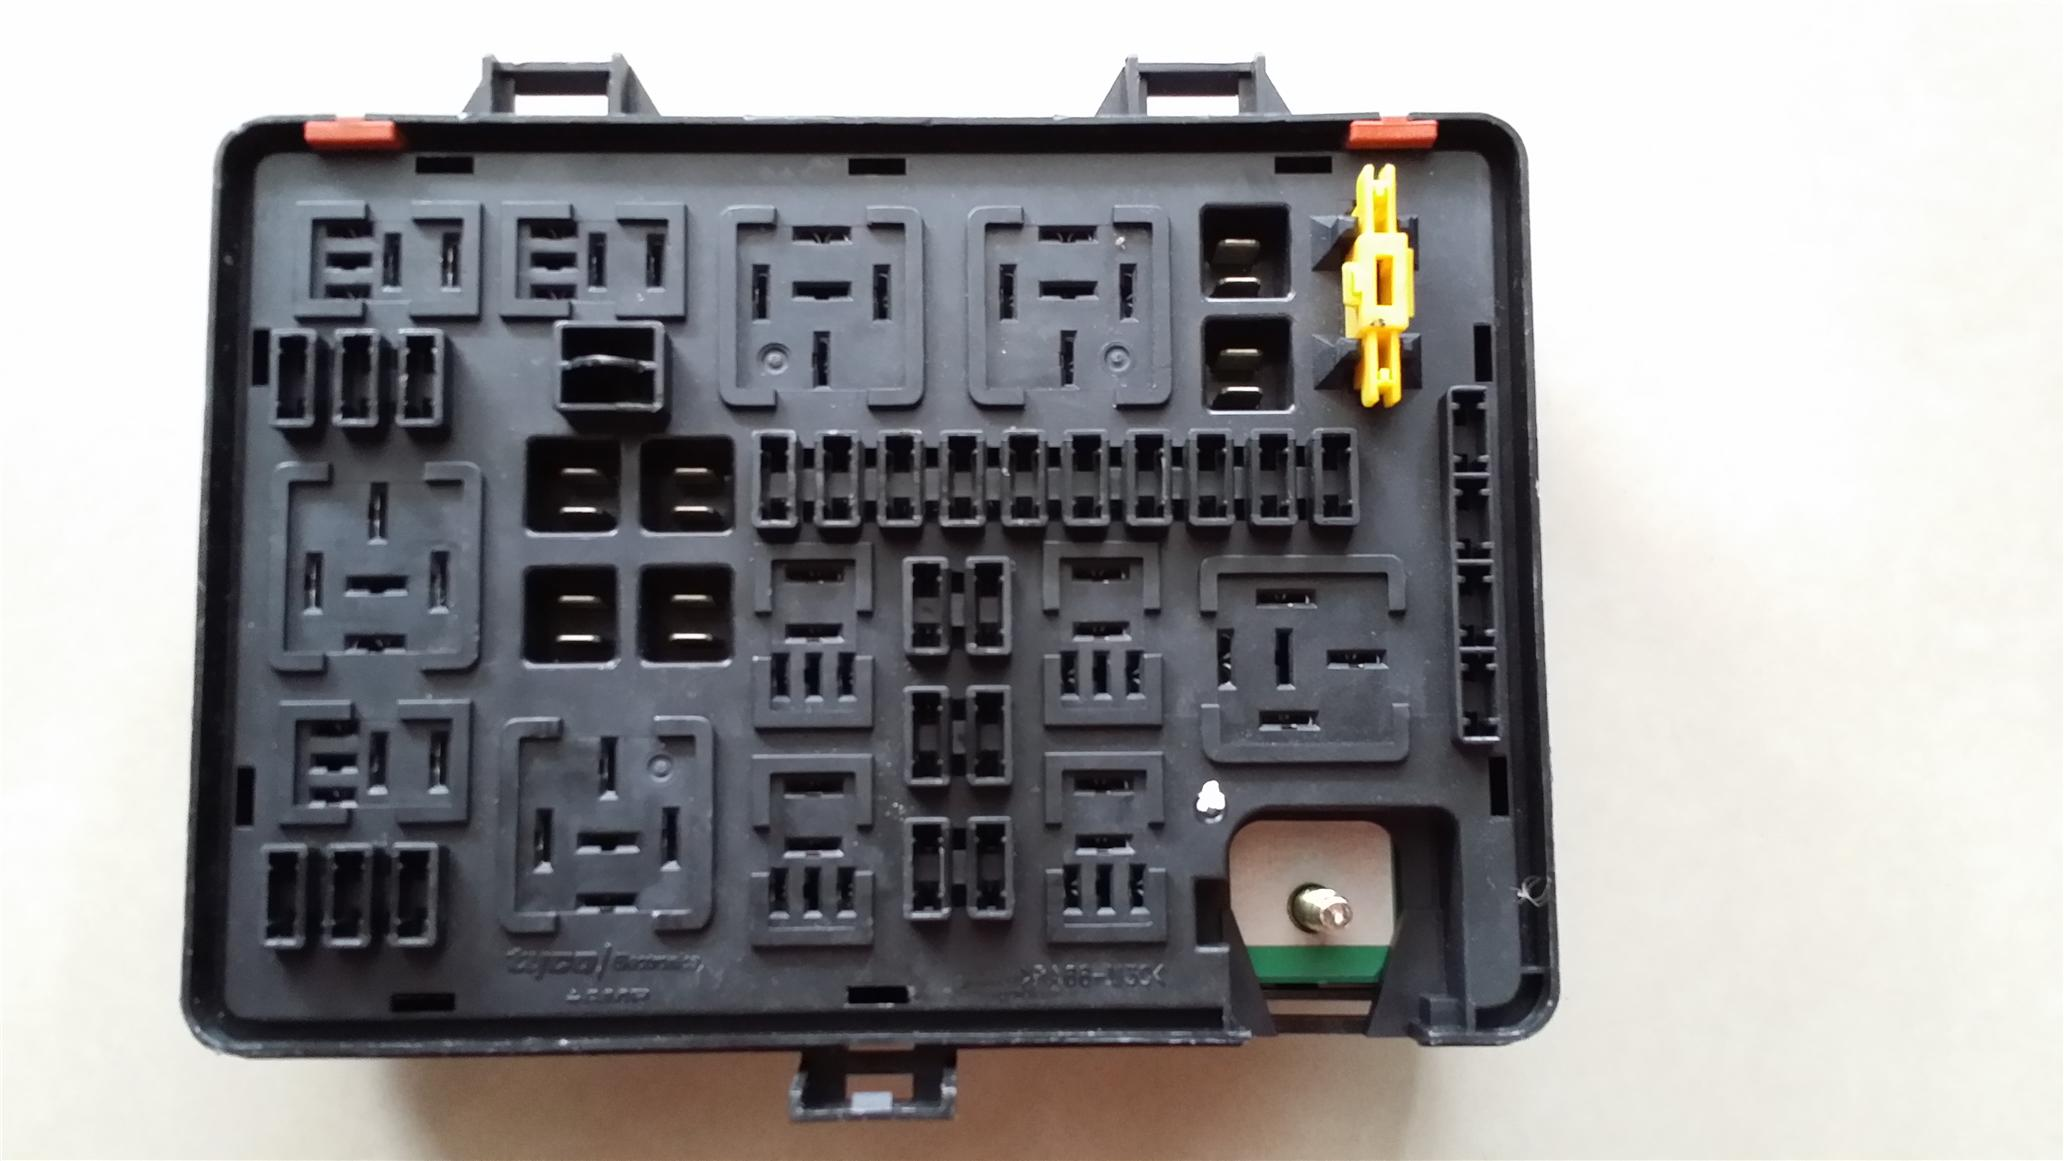 gen2 original main fuse box master star icon 1507 04 STAR_ICON@20 main fuse fuse box how to change a fuse in a breaker box \u2022 wiring fuse box extension at bakdesigns.co